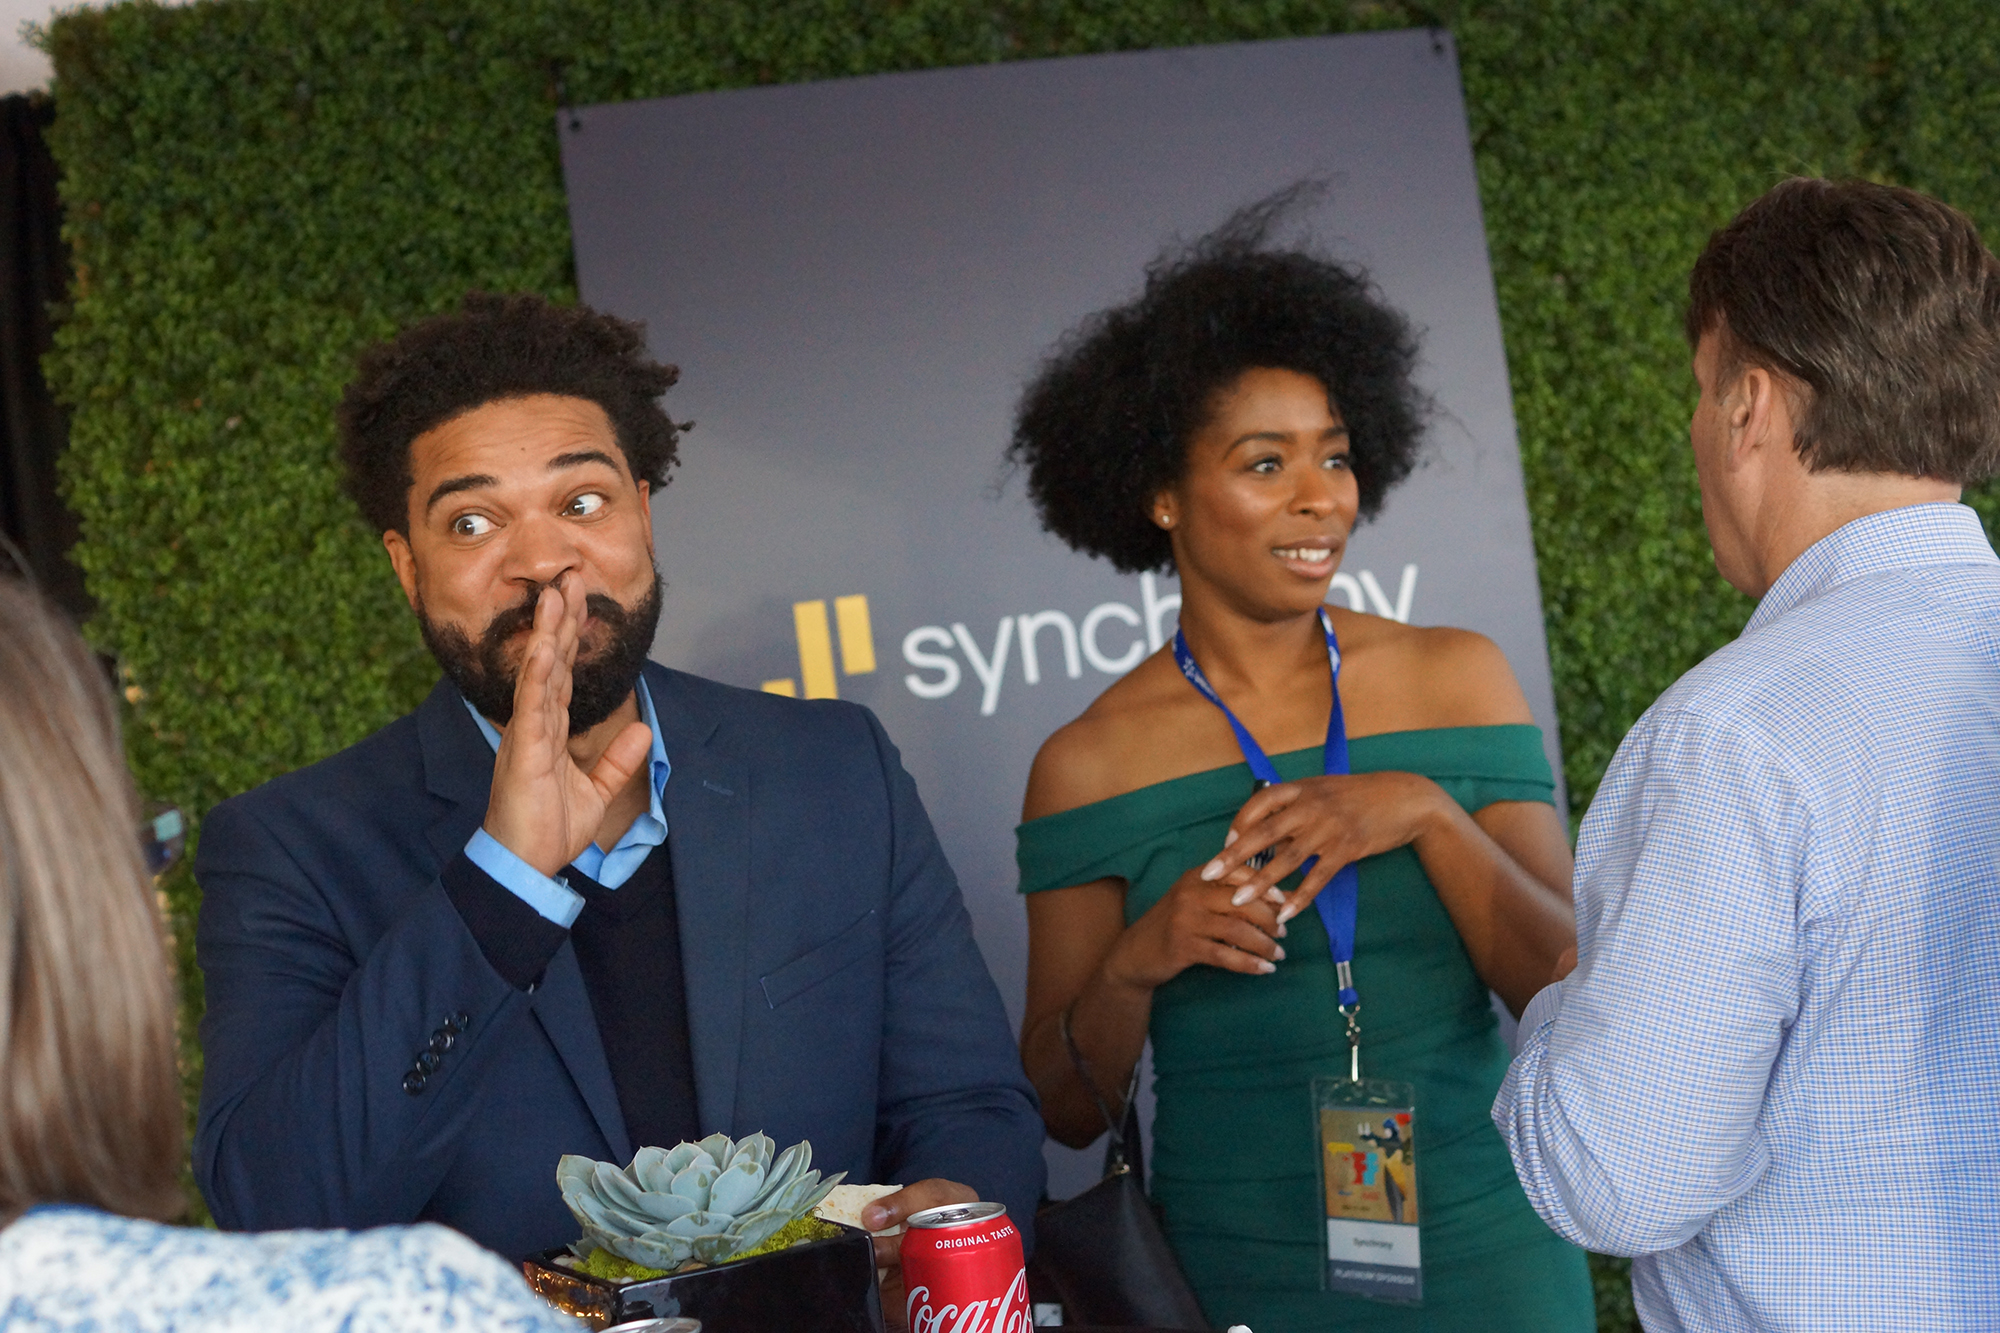 A candid moment used on Synchony's social media for covering BFF 2018.